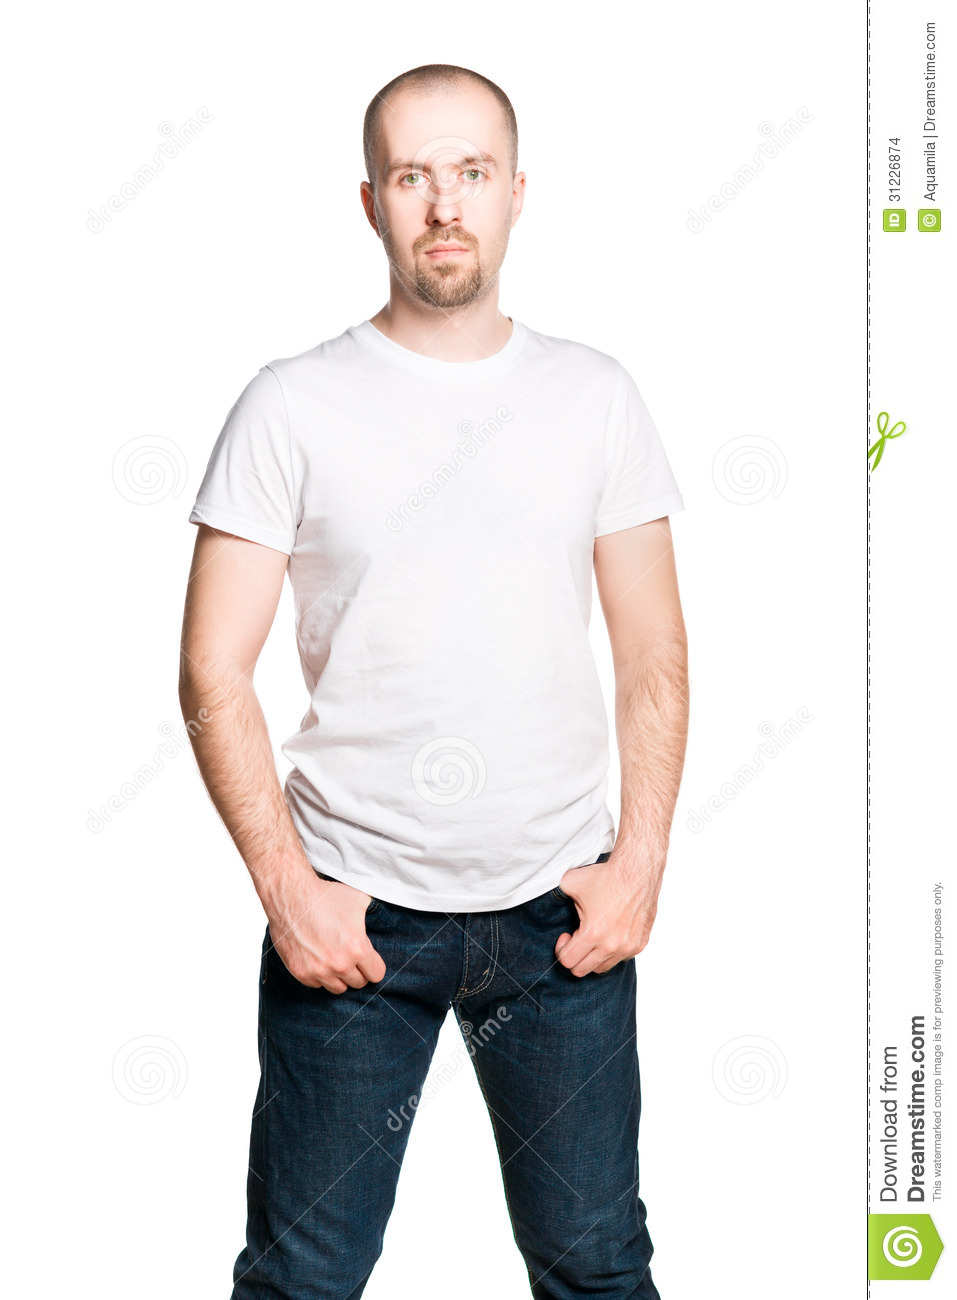 Attractive Confident Man In White T-shirt And Blue Jeans Stock Images - Image 31226874